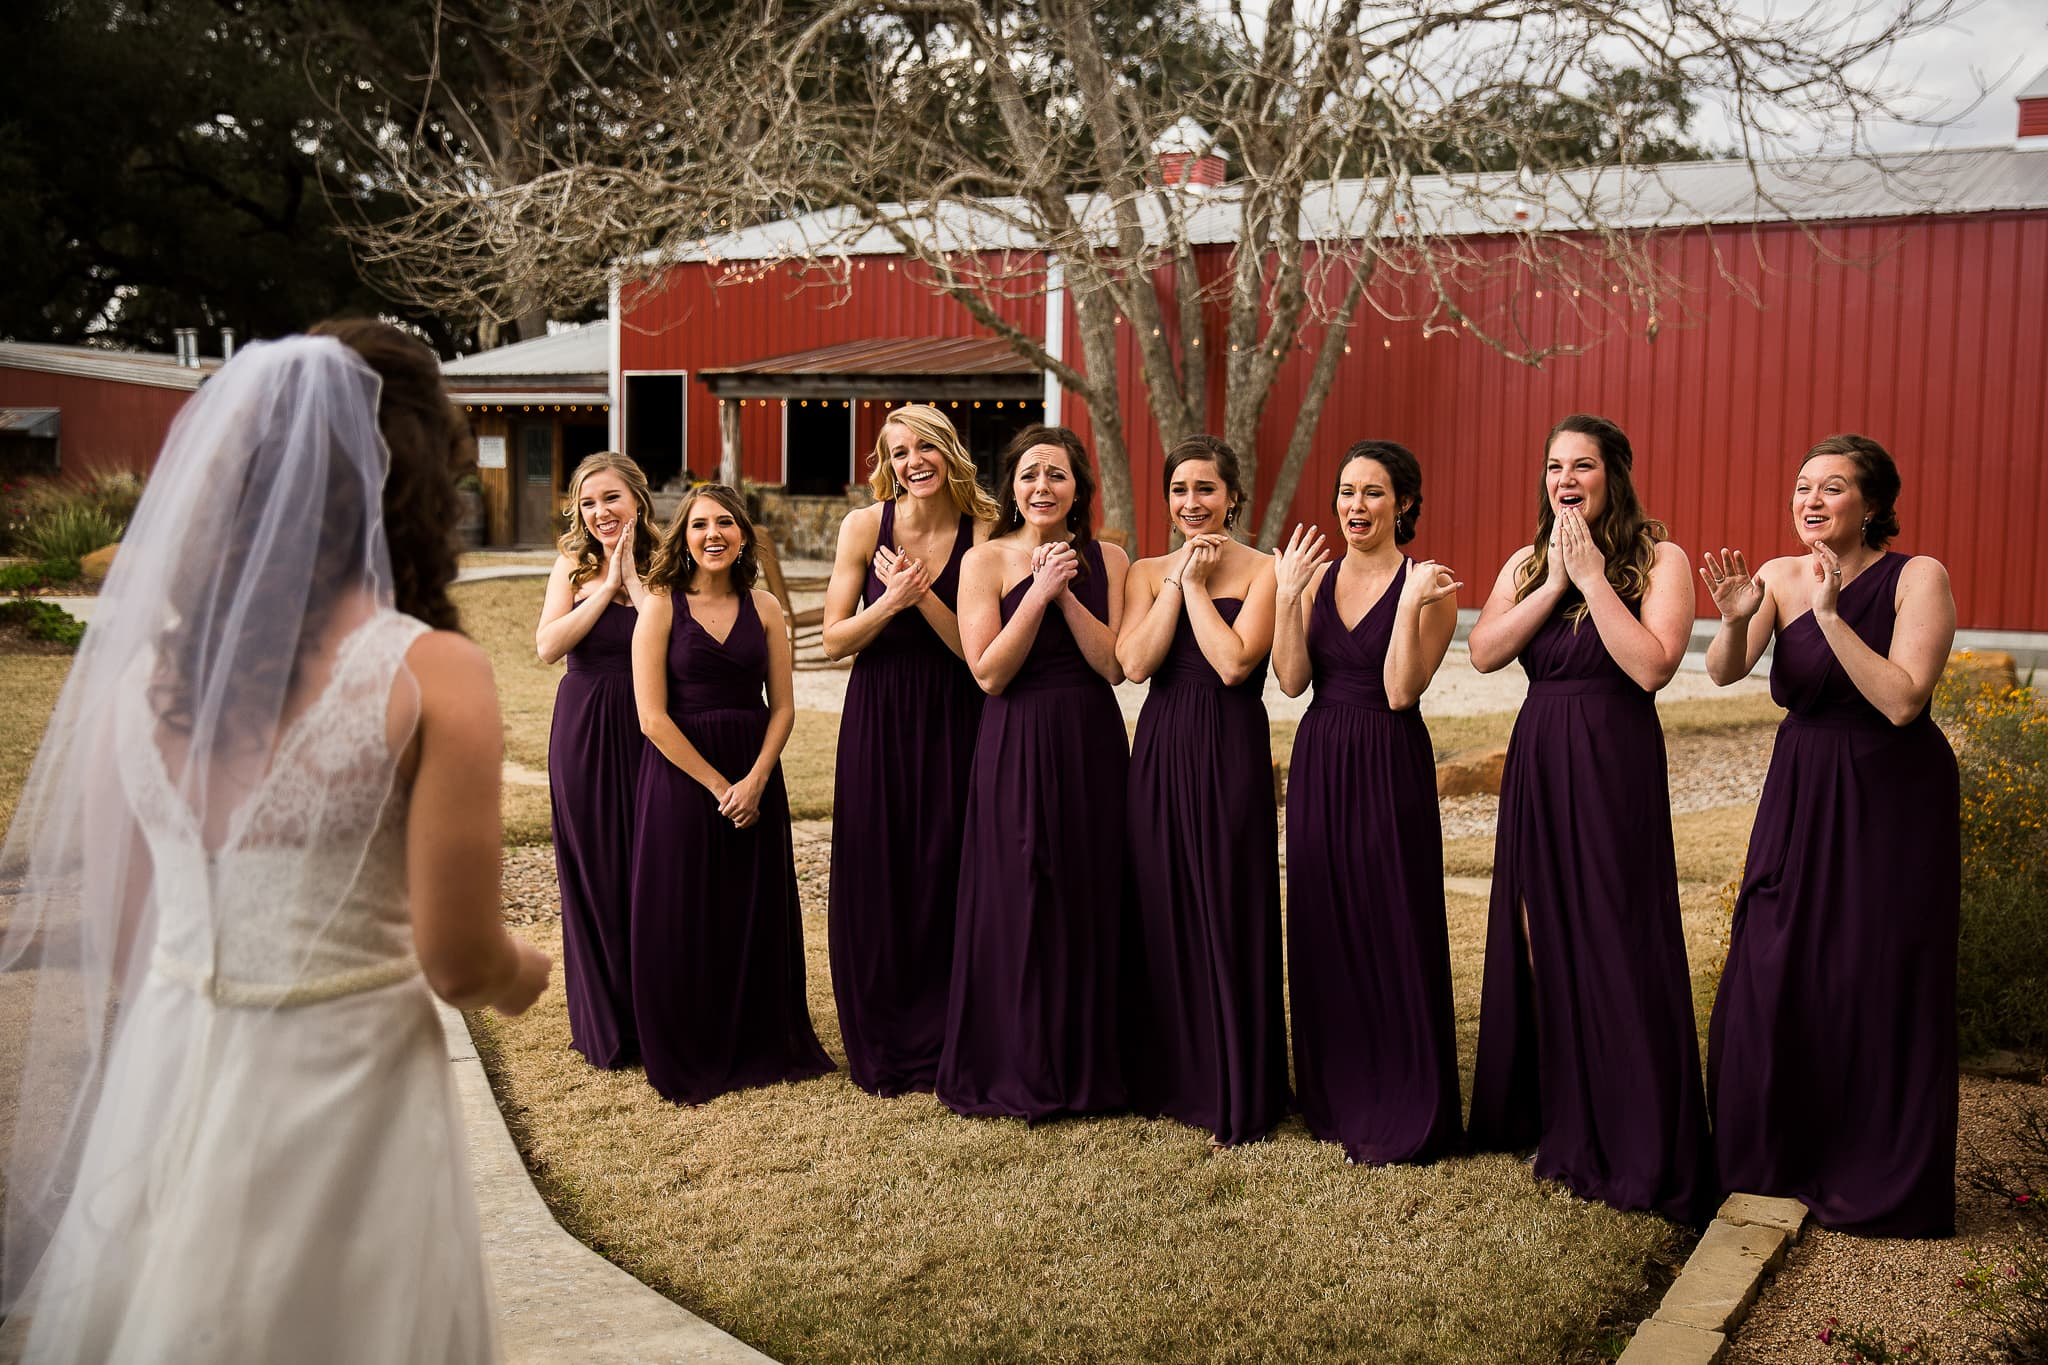 best austin wedding photographer john winters photography bridesmaids react to bride in dress